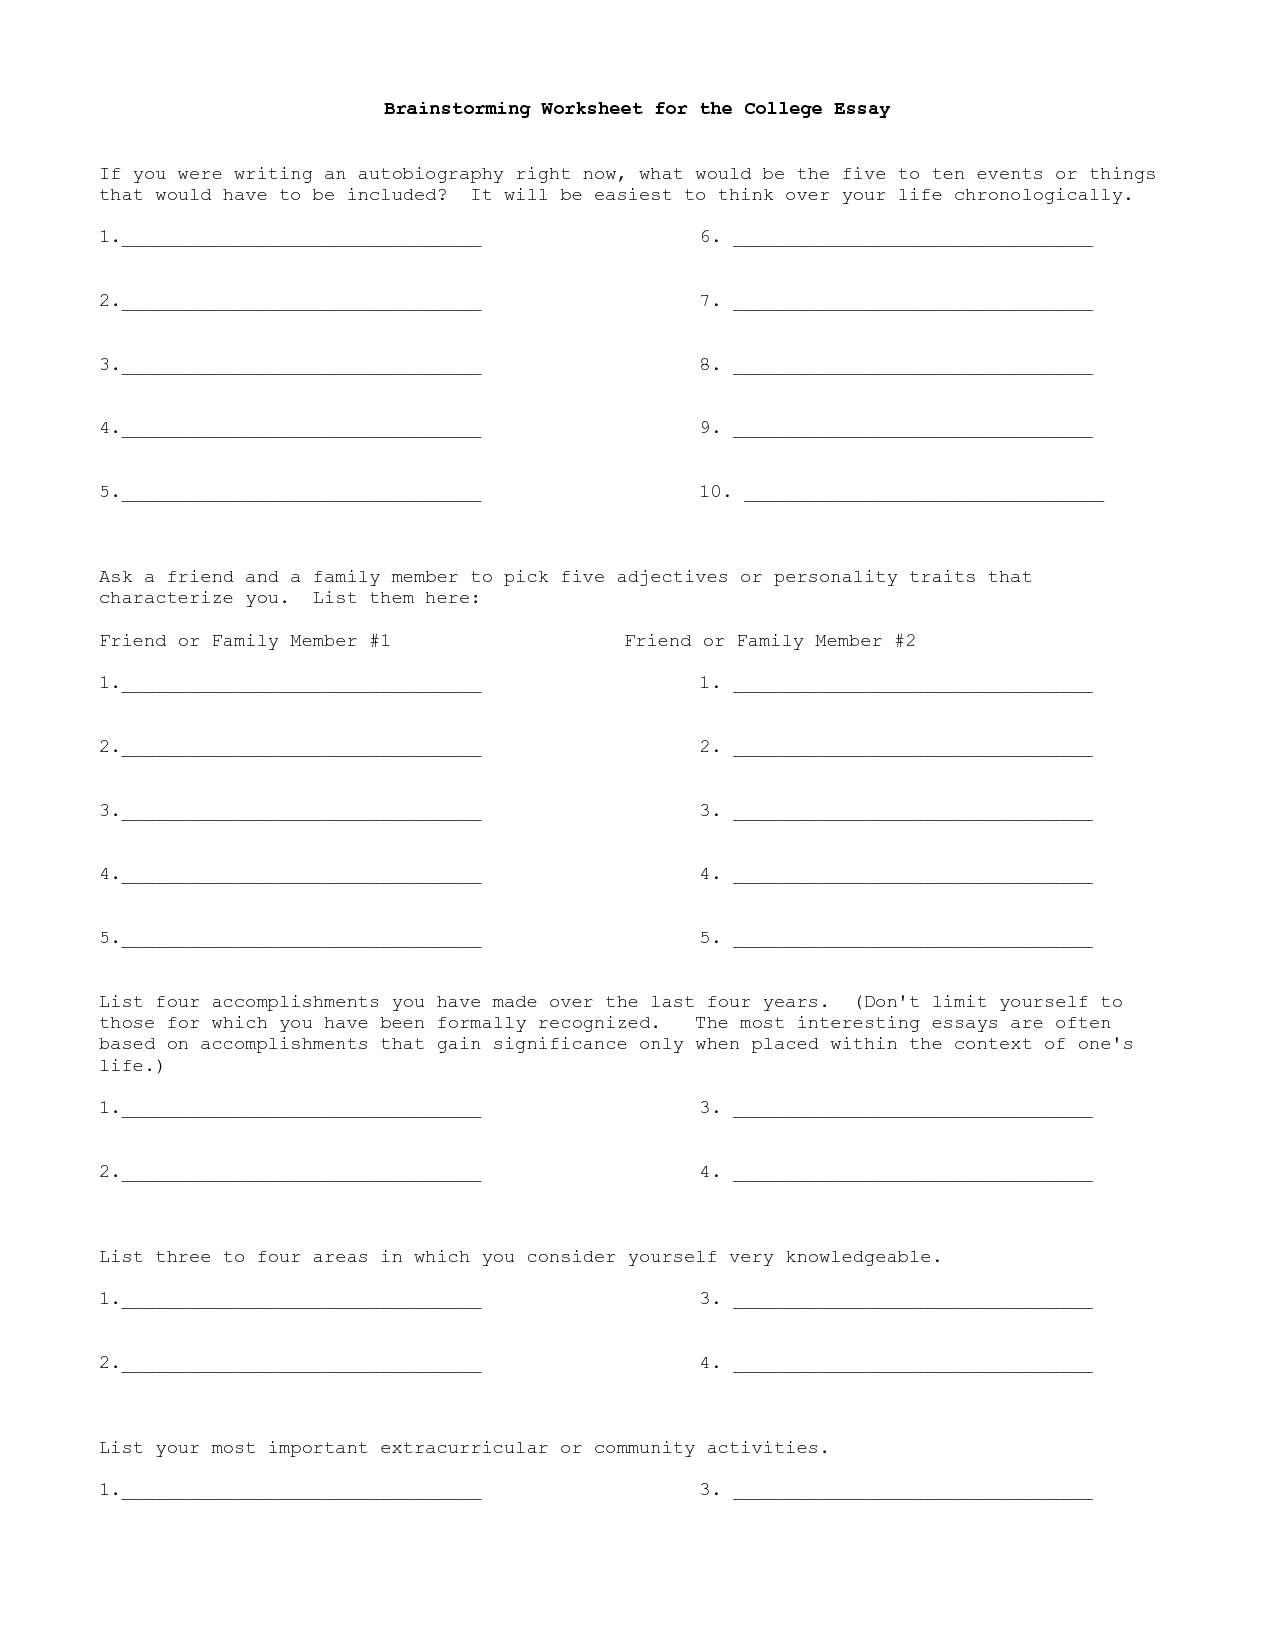 34 College Essay Brainstorming Worksheet